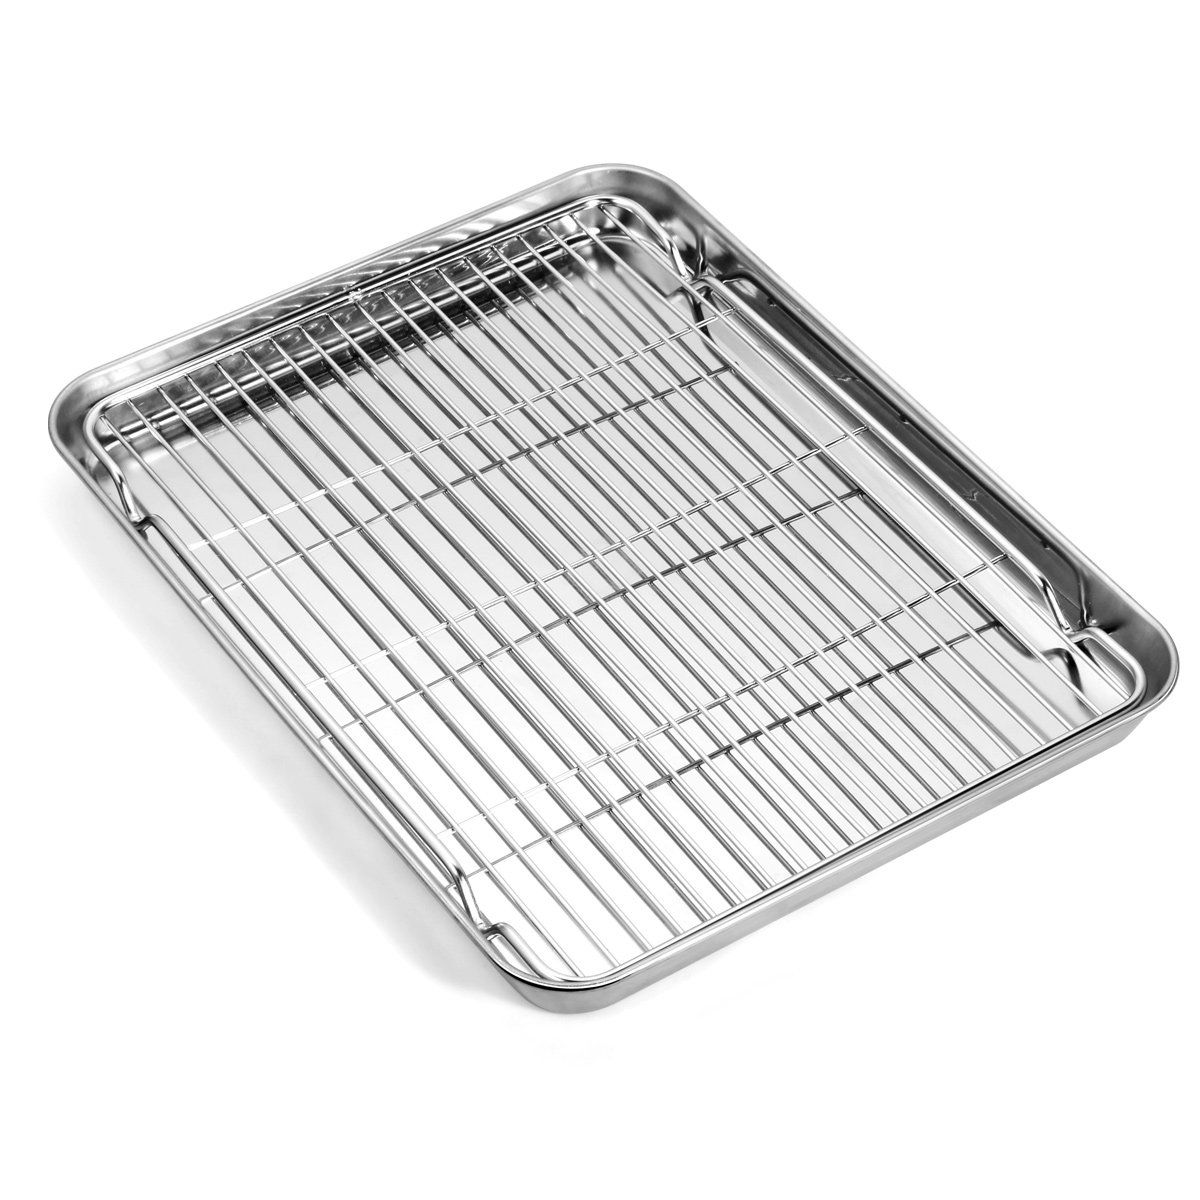 Baking Sheets And Rack Set Zacfton Cookie Pan With Nonstick Cooling Rack And Cookie Sheets Rectangle Size Kids Baking Supplies Baking Sheets Toaster Oven Pans